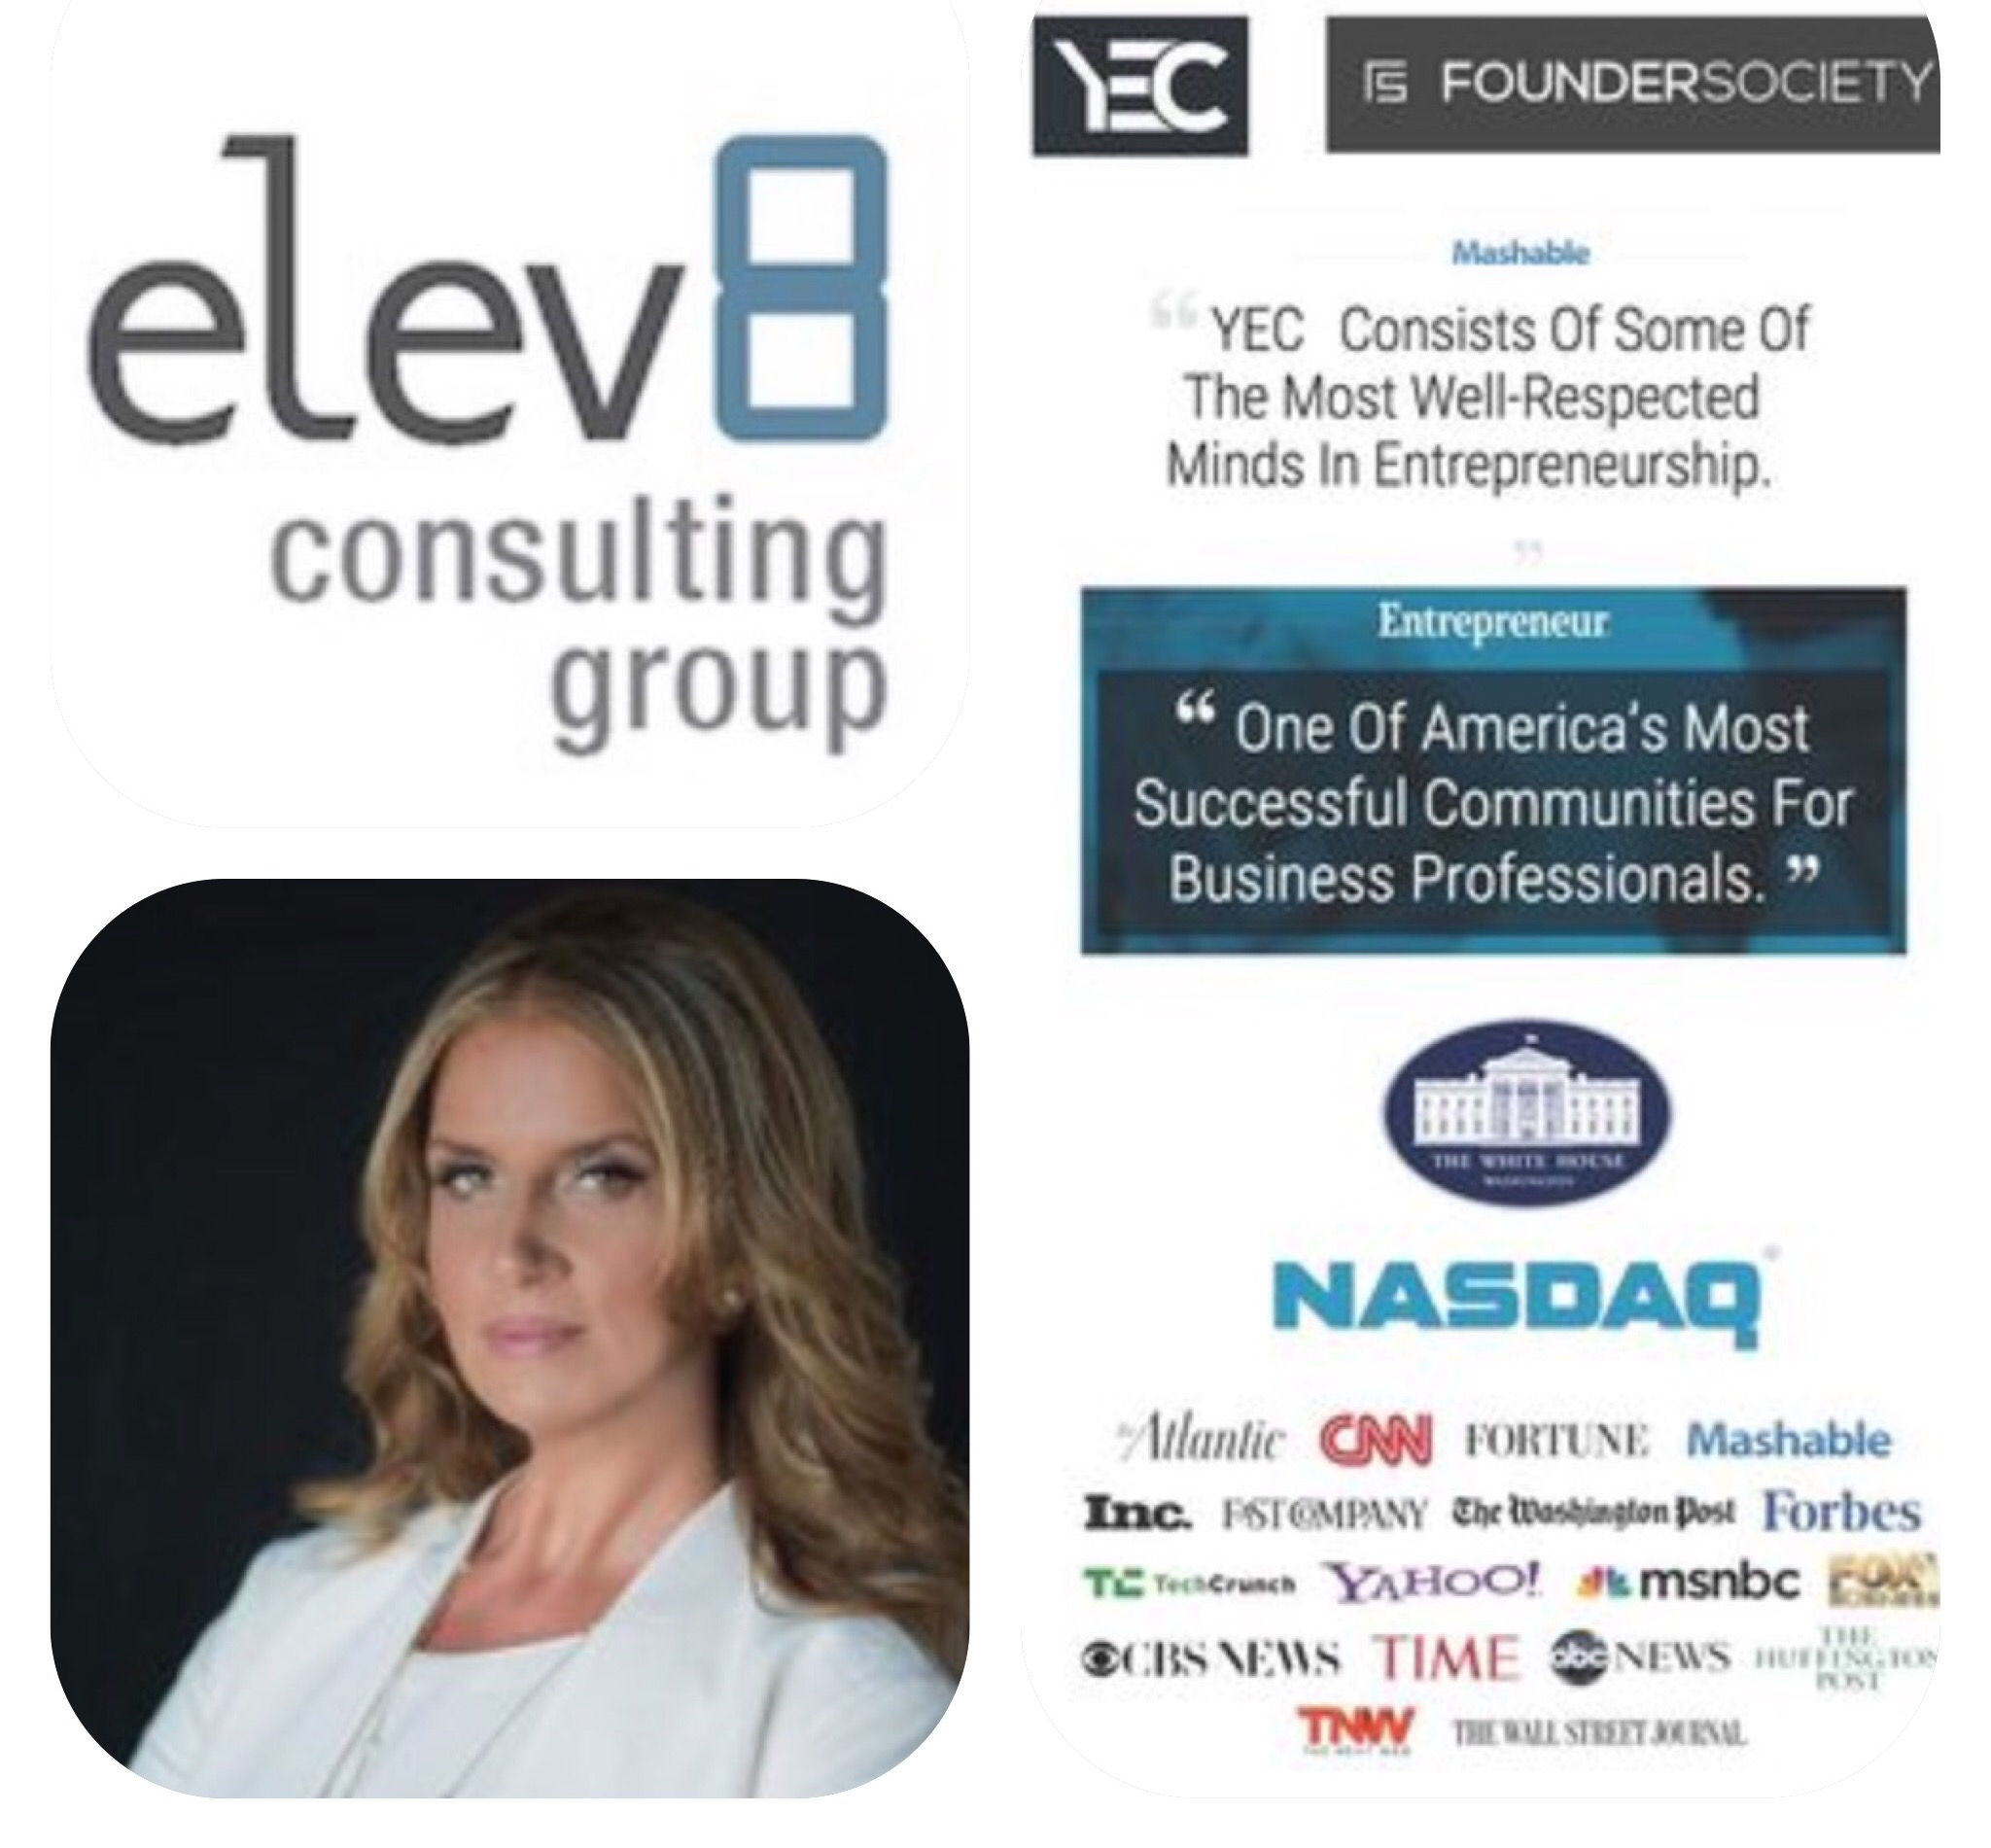 Elev8 Consulting Group YEC Founder Society